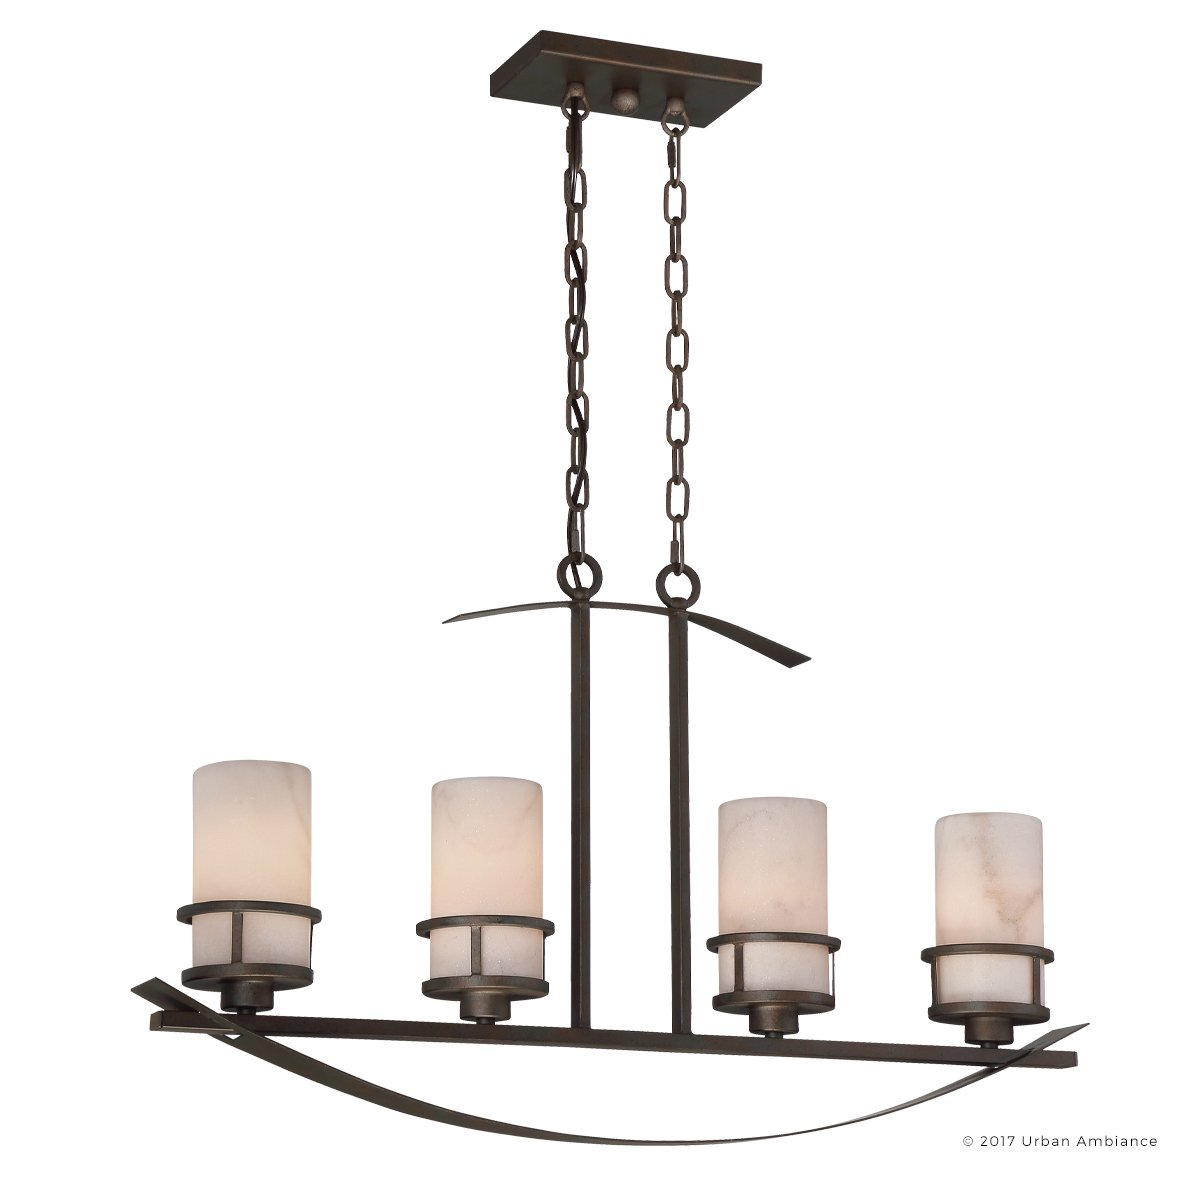 Luxury Rustic Chandelier, Large Size: 18.5''H x 32.5''W, with Craftsman Style Elements, Banded Wrought Iron Design, Forged Iron Finish and White Onyx Stone Shades, UQL2415 by Urban Ambiance by Urban Ambiance (Image #1)